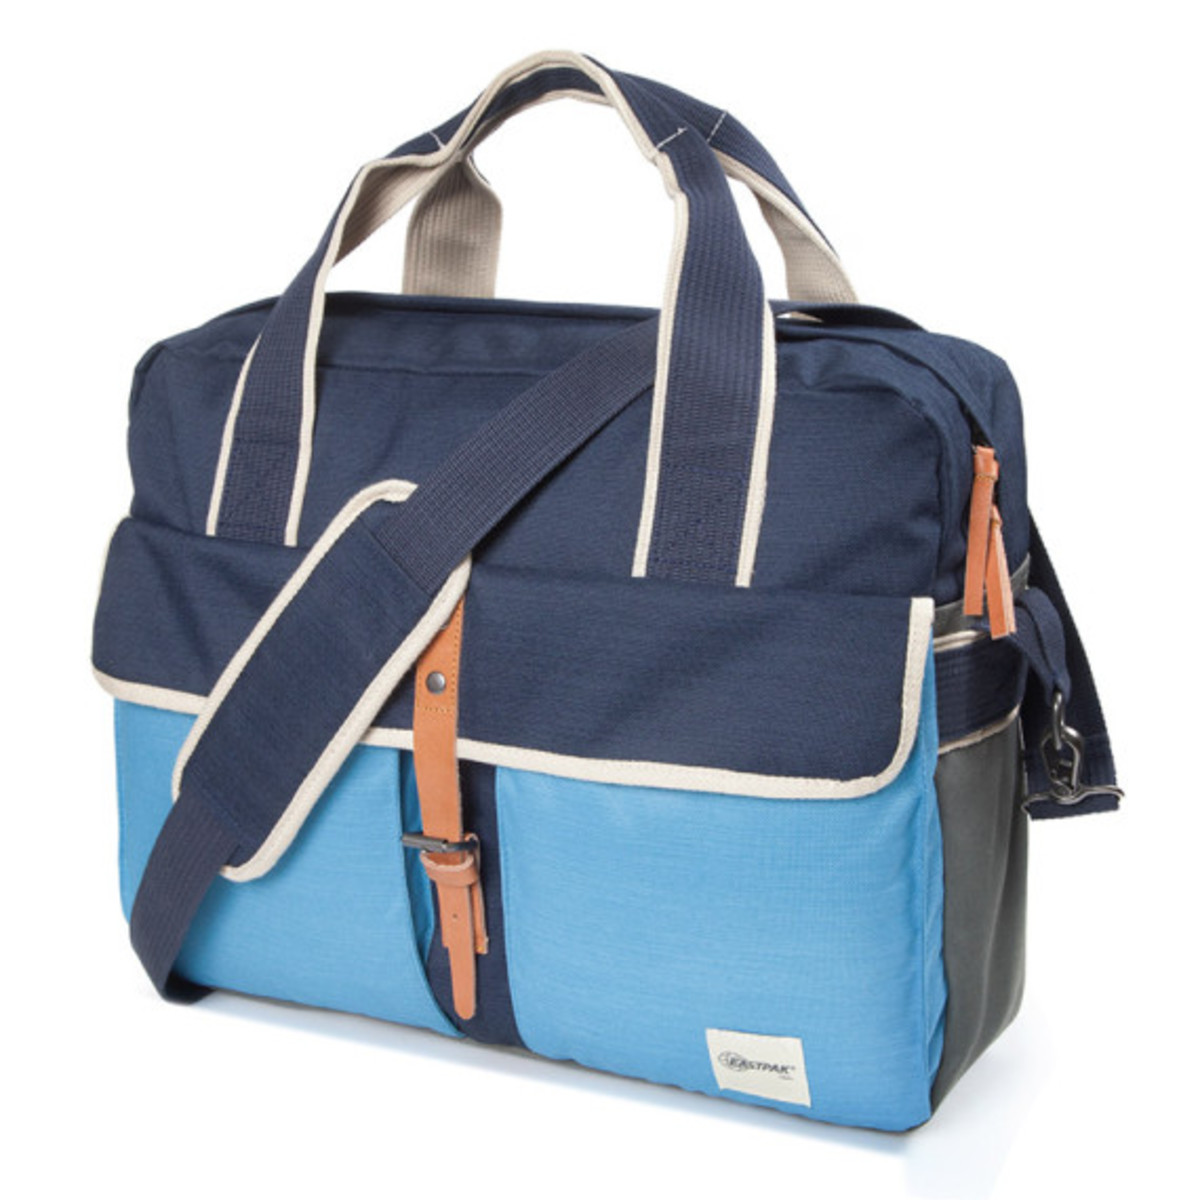 eastpak-authentic-outwards-collection-04